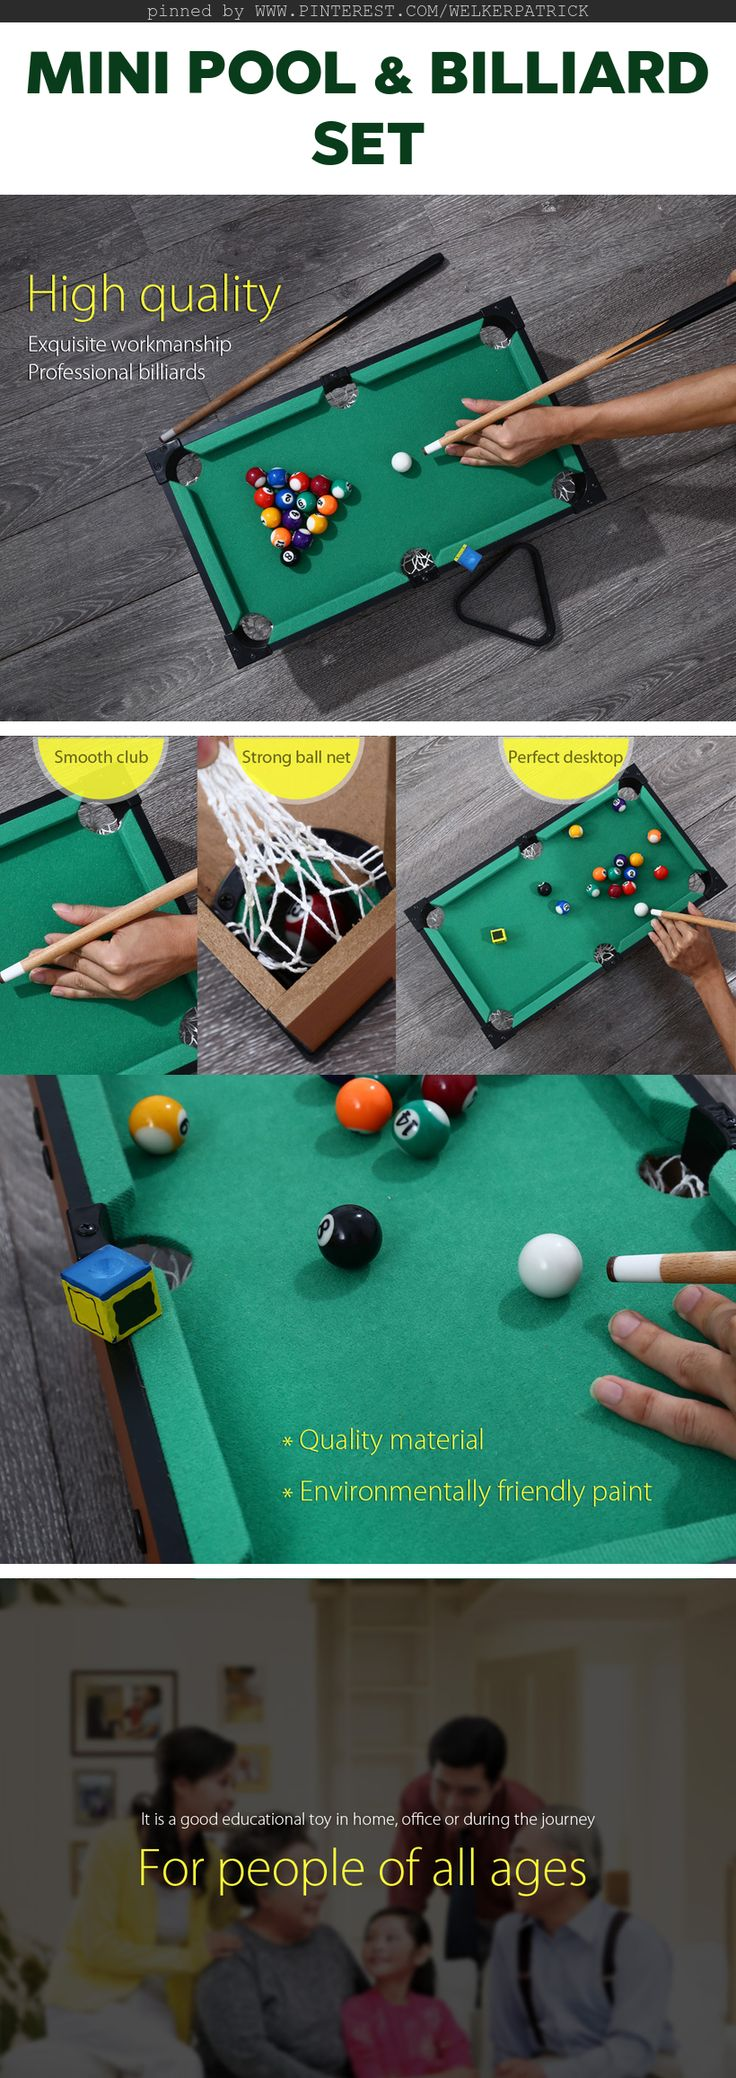 Brush Moreover Pool Table Dining Room In Addition Pool Table Top - Mini snooker pool table top game set